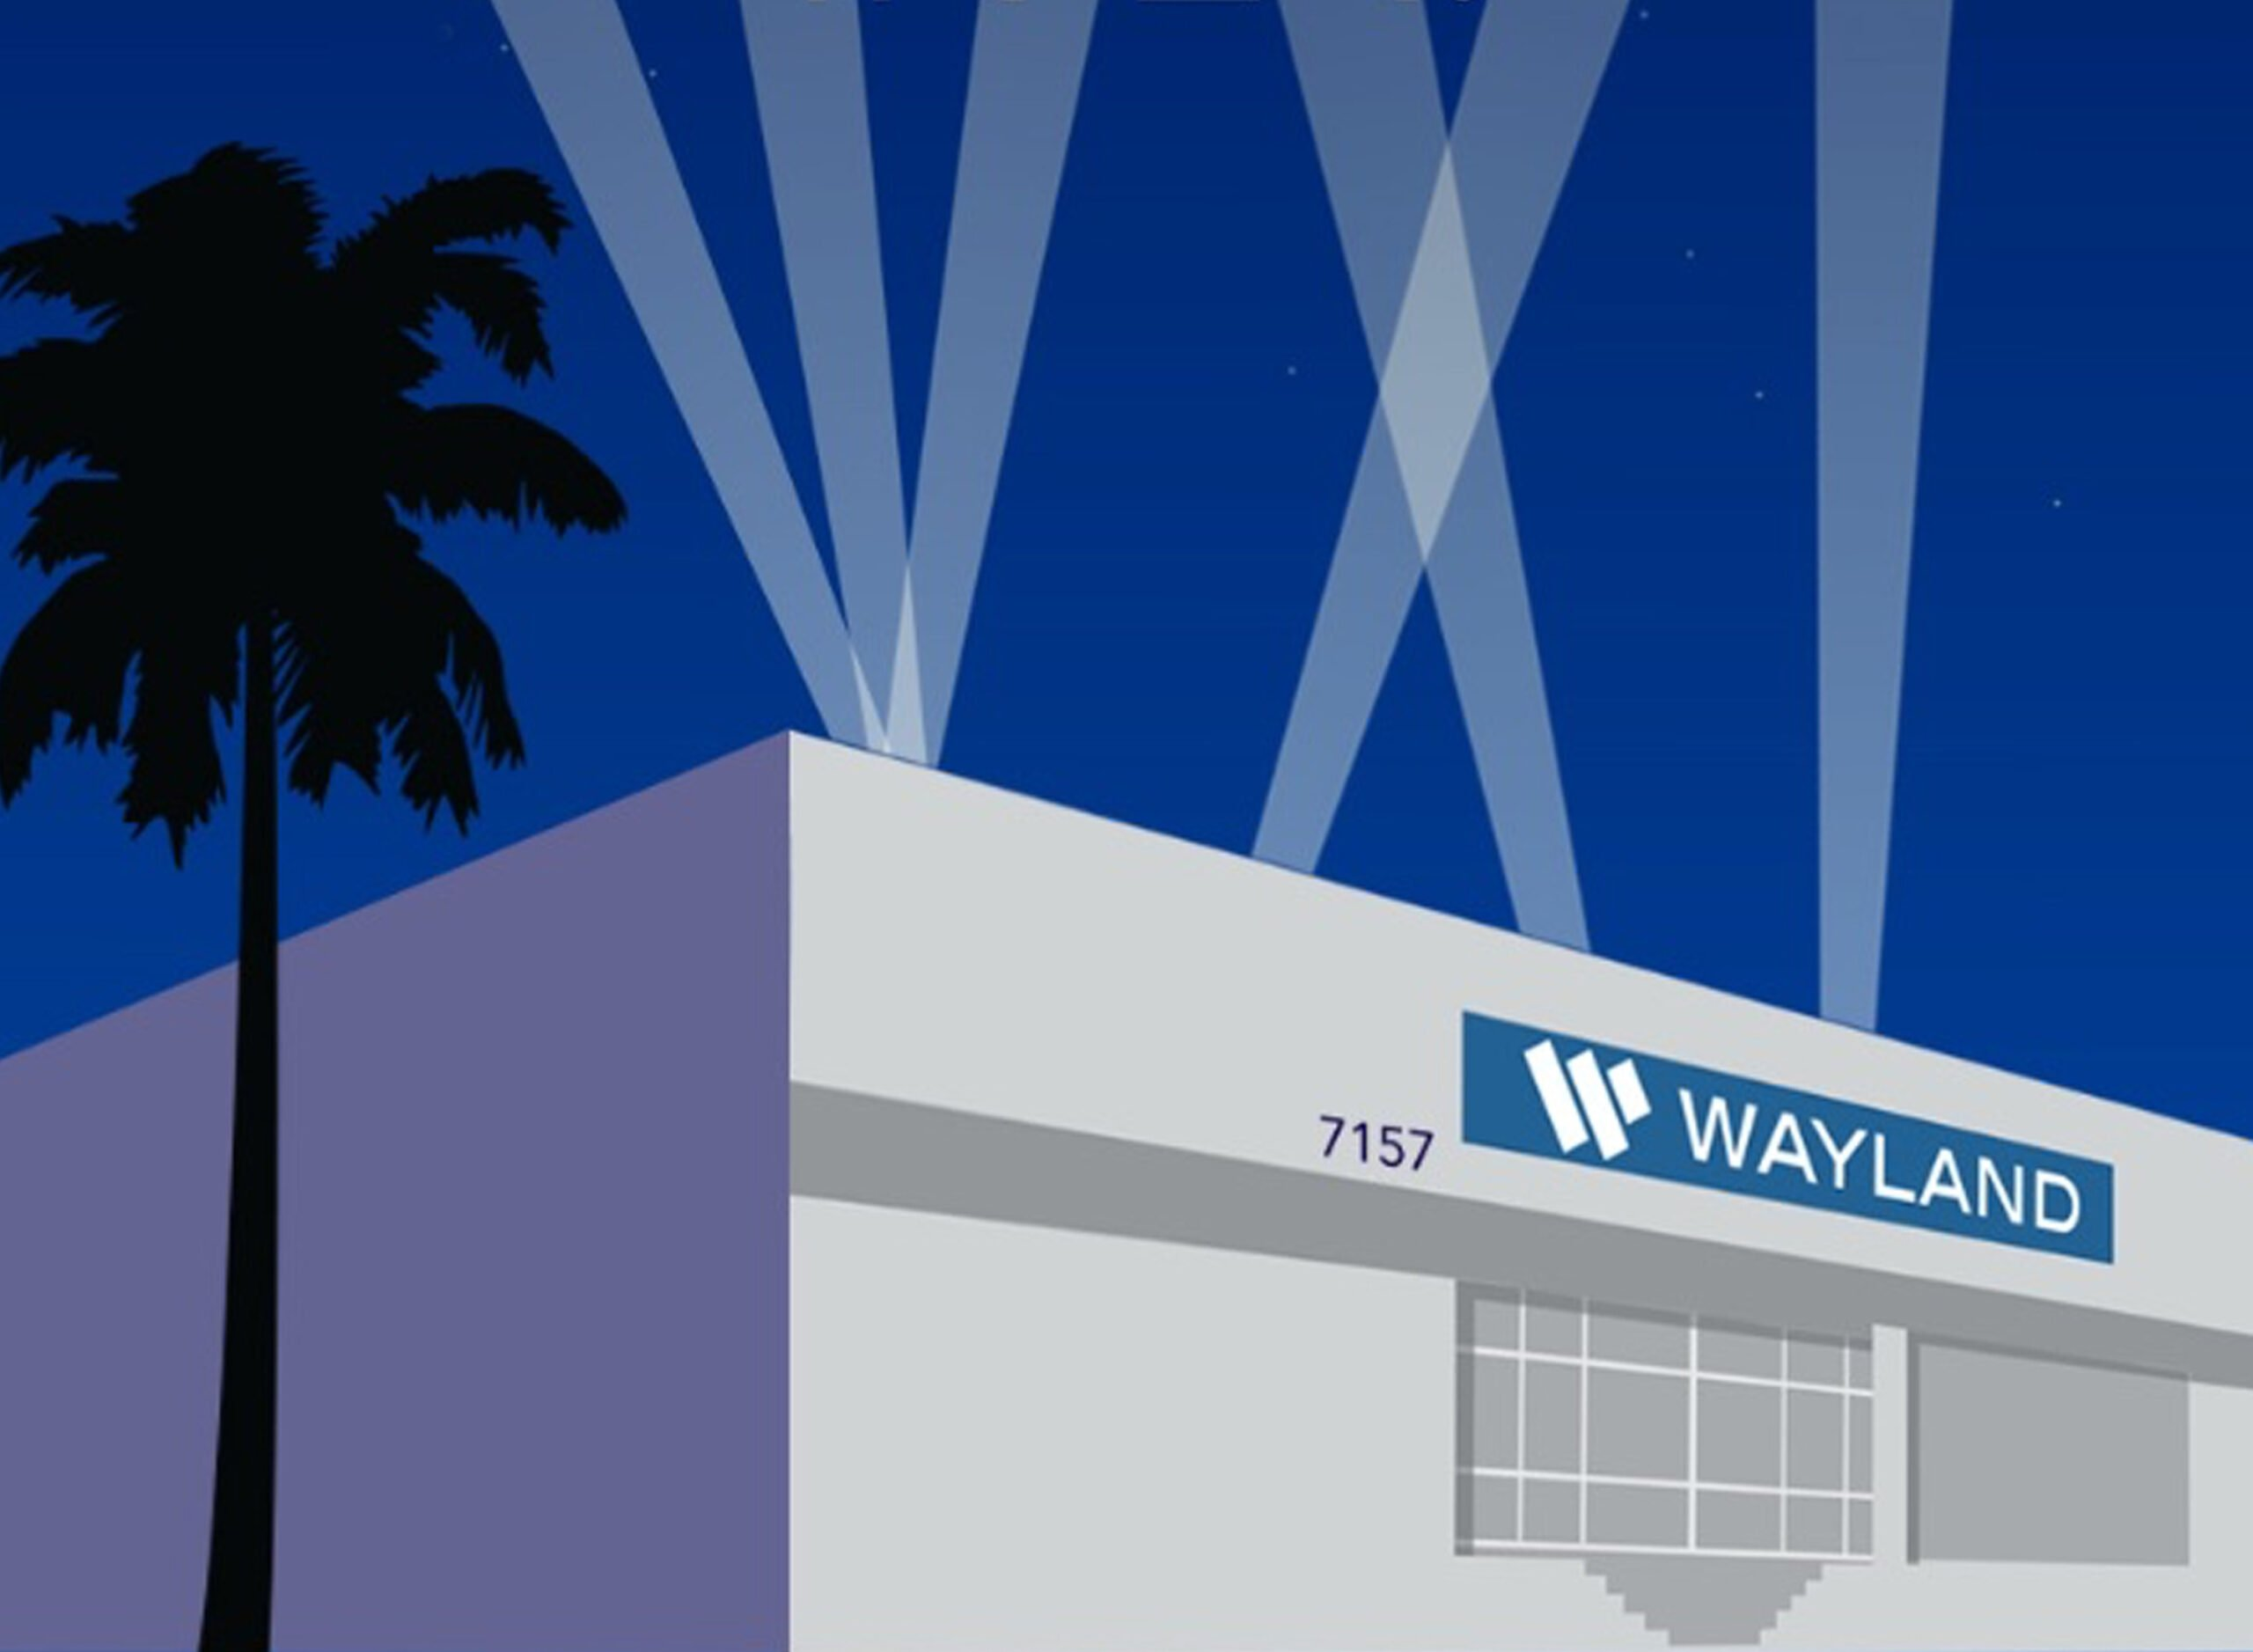 Wayland opens to great reviews in LA